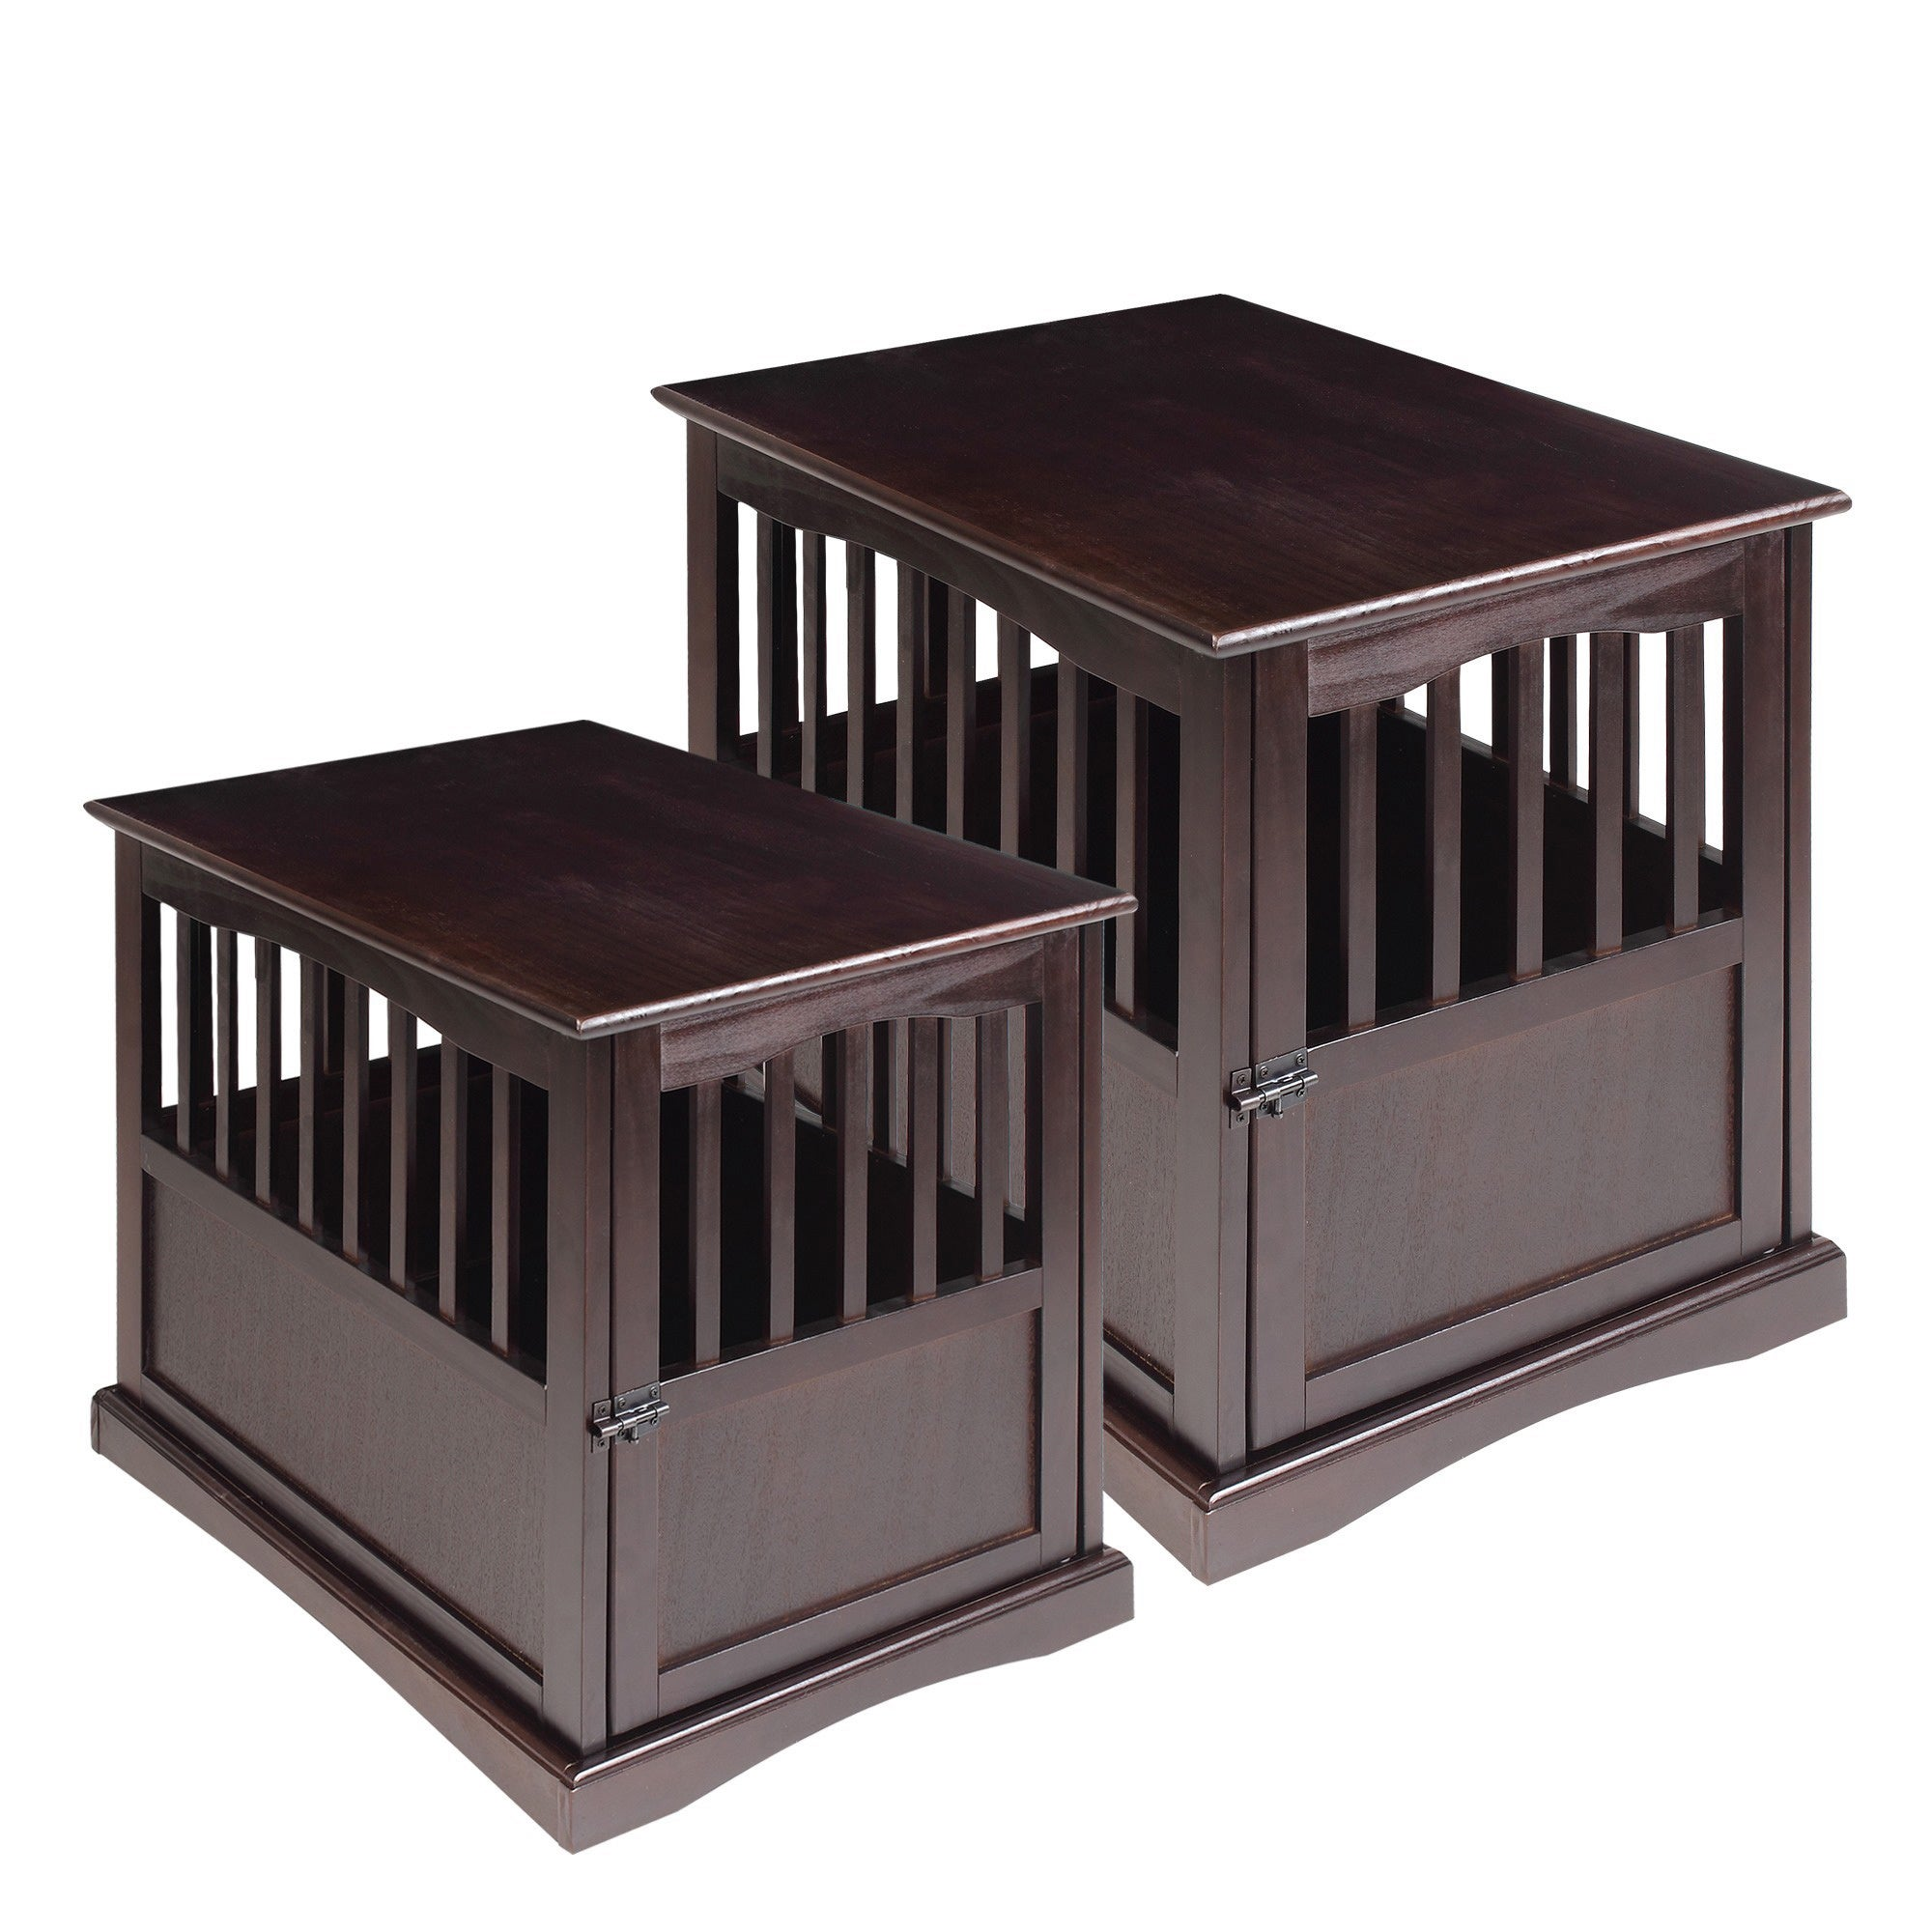 Wooden End Table and Pet Crate Free Shipping Today Overstock